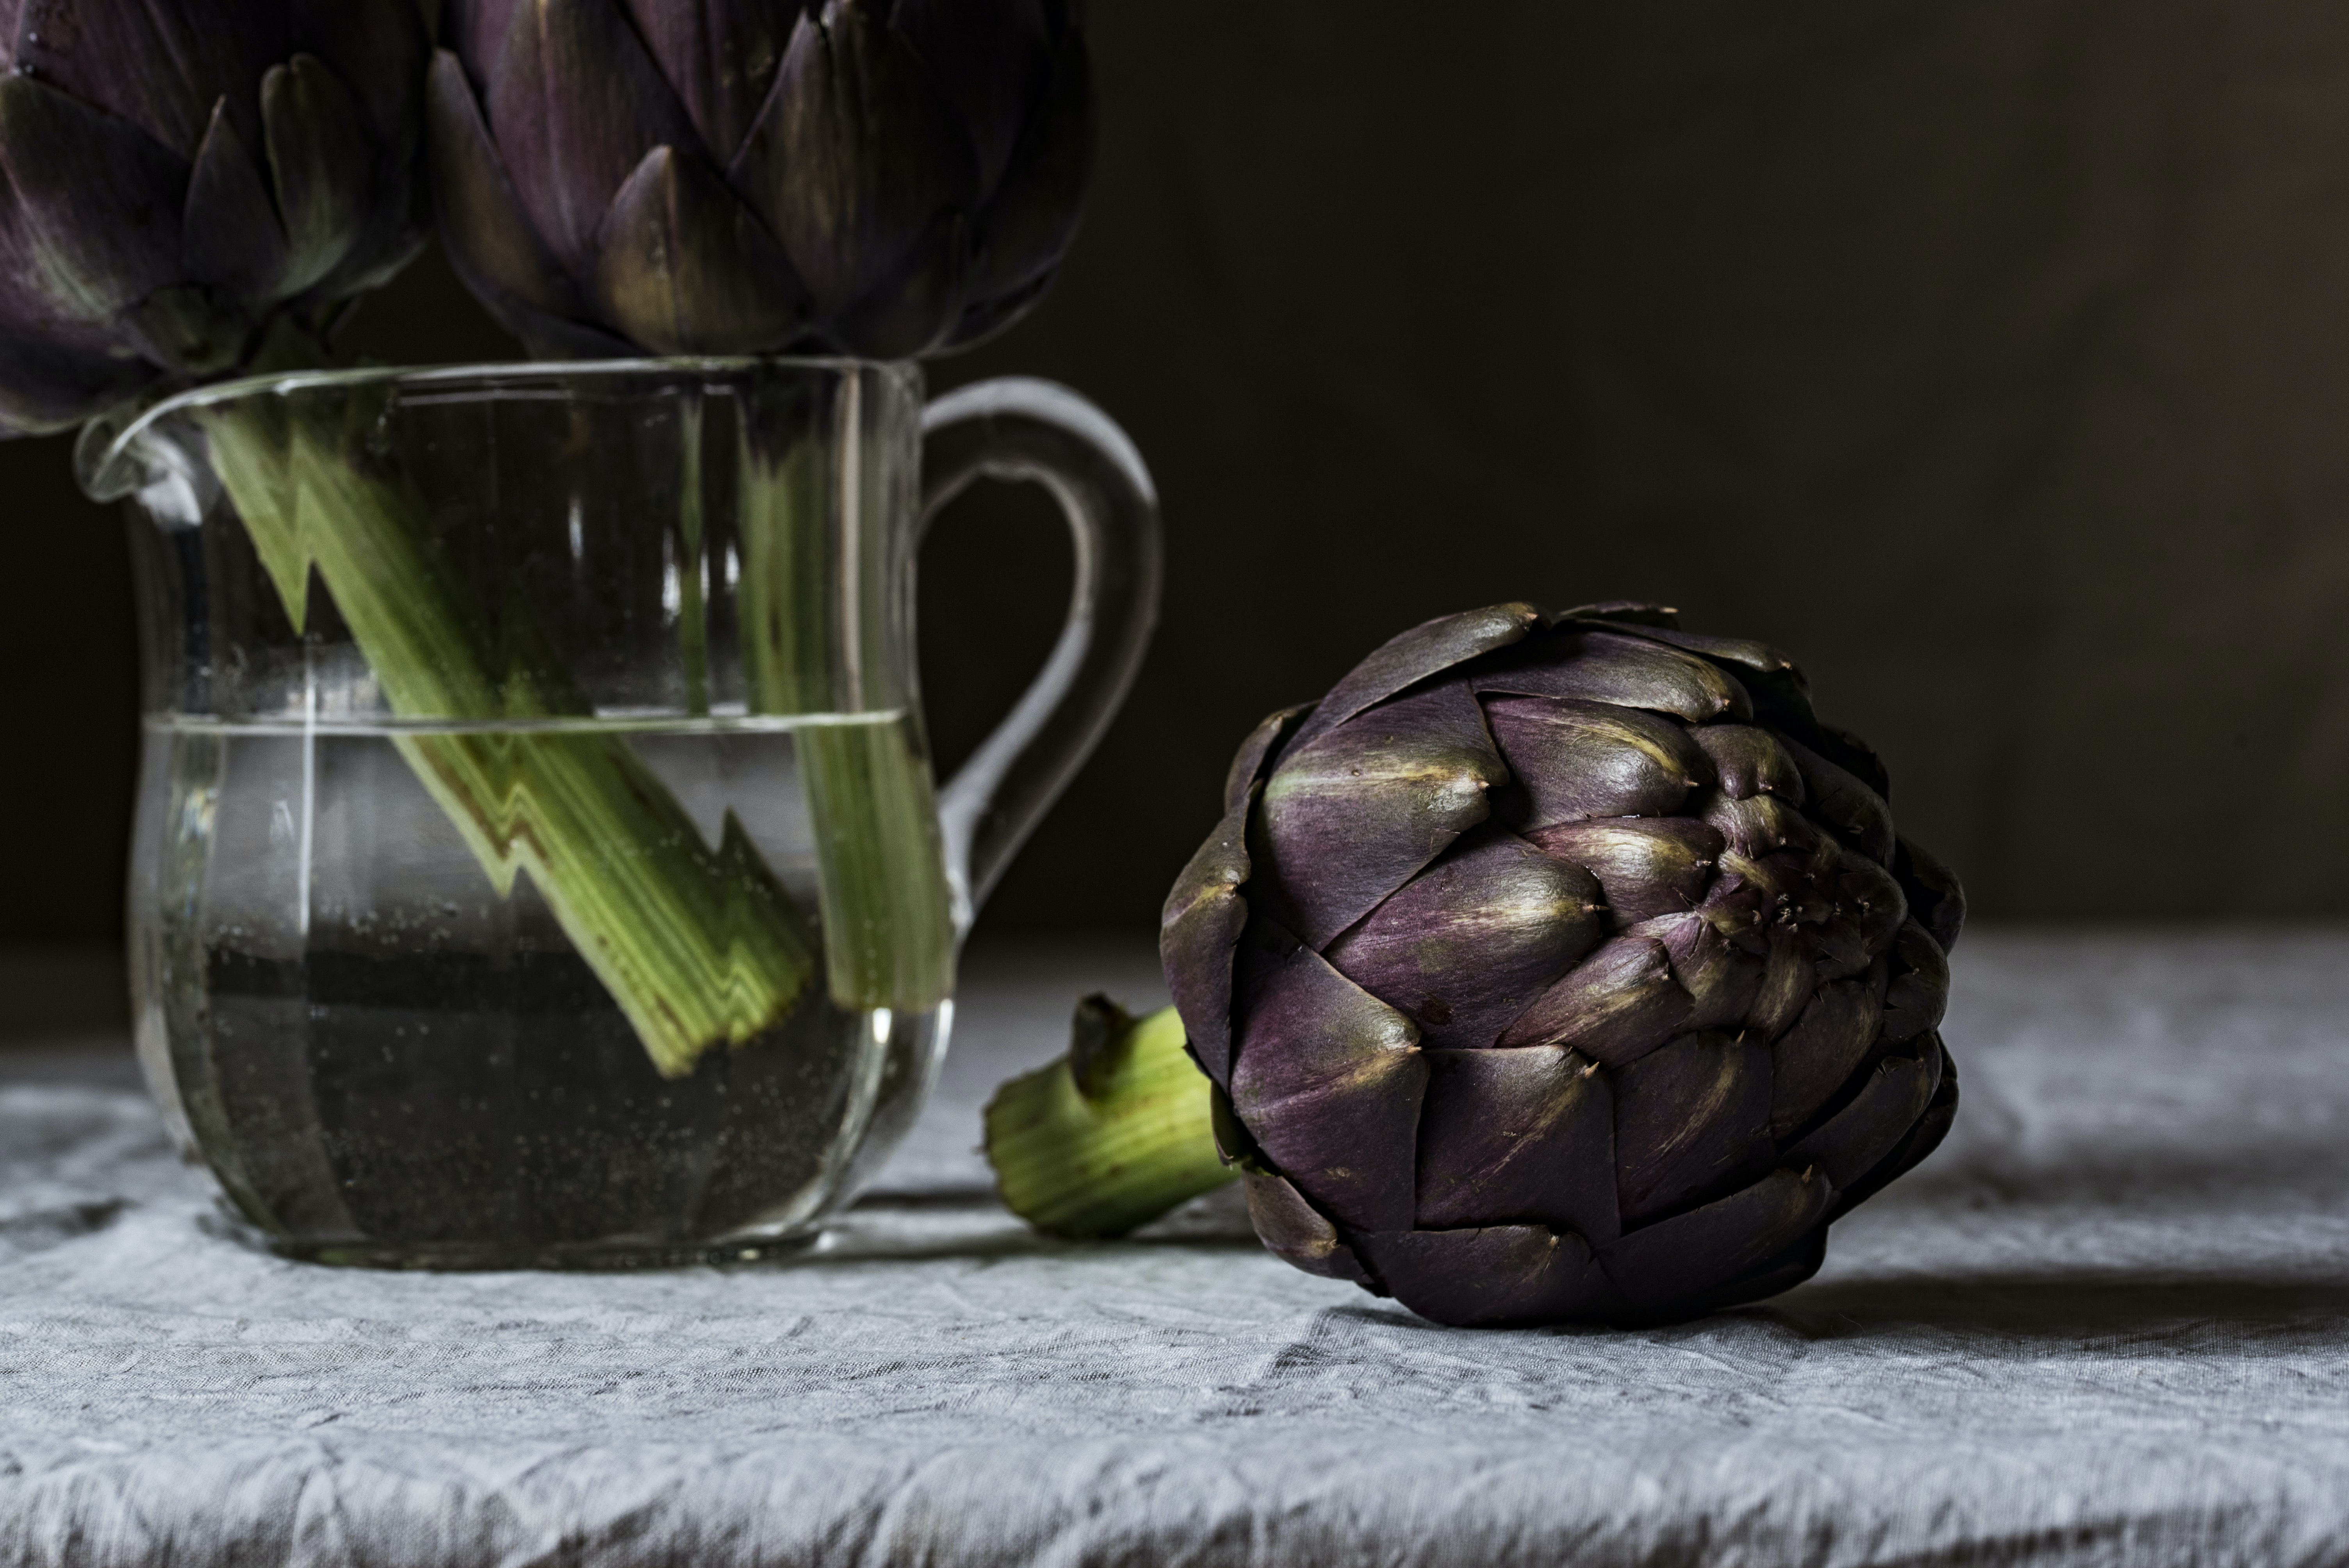 Purple artichoke in a jug of water